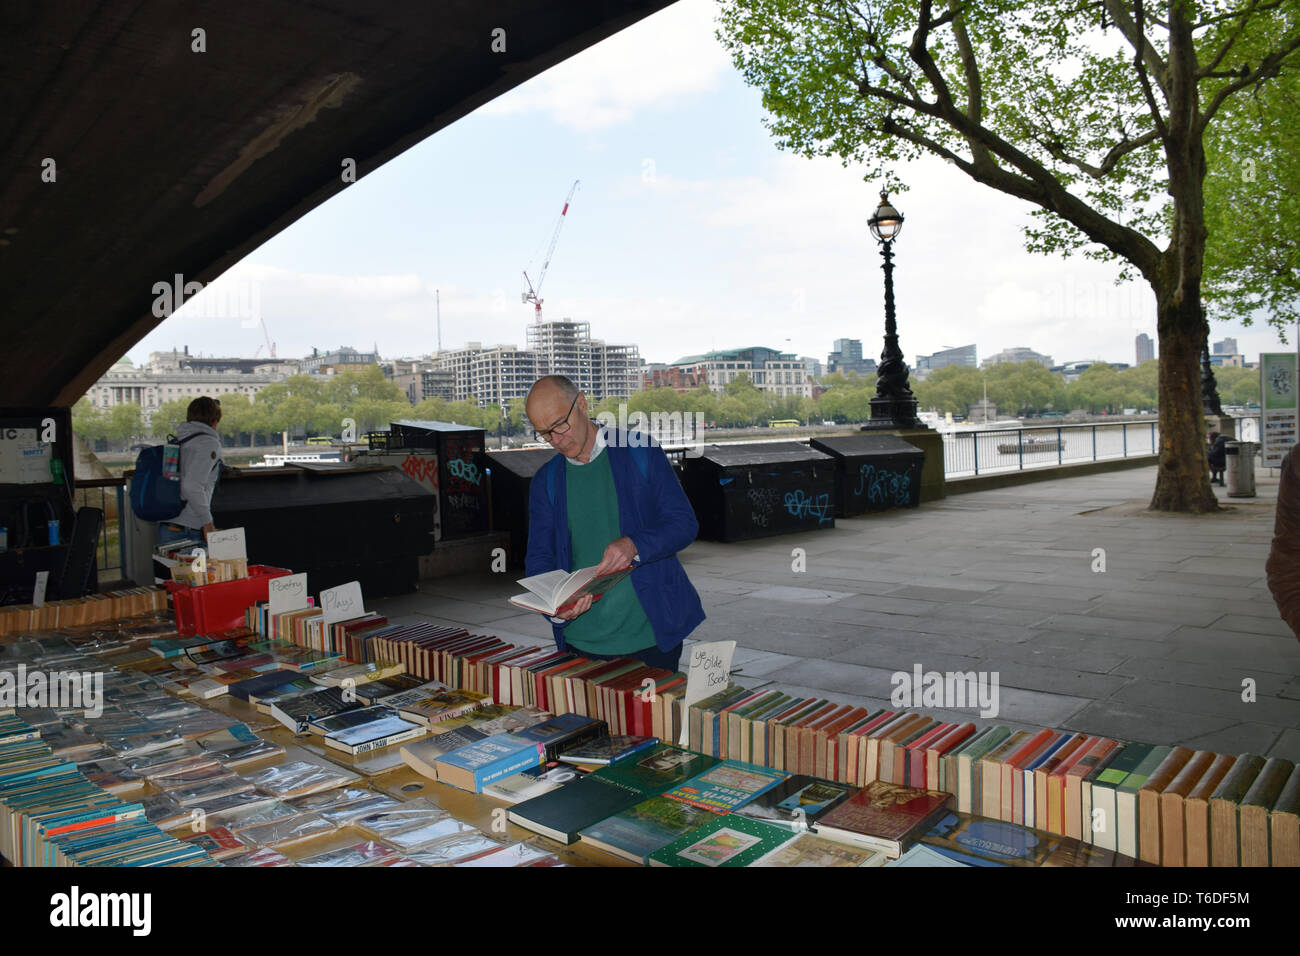 Second hand book stall on South Bank, London UK April 2019. Posed by model - Stock Image